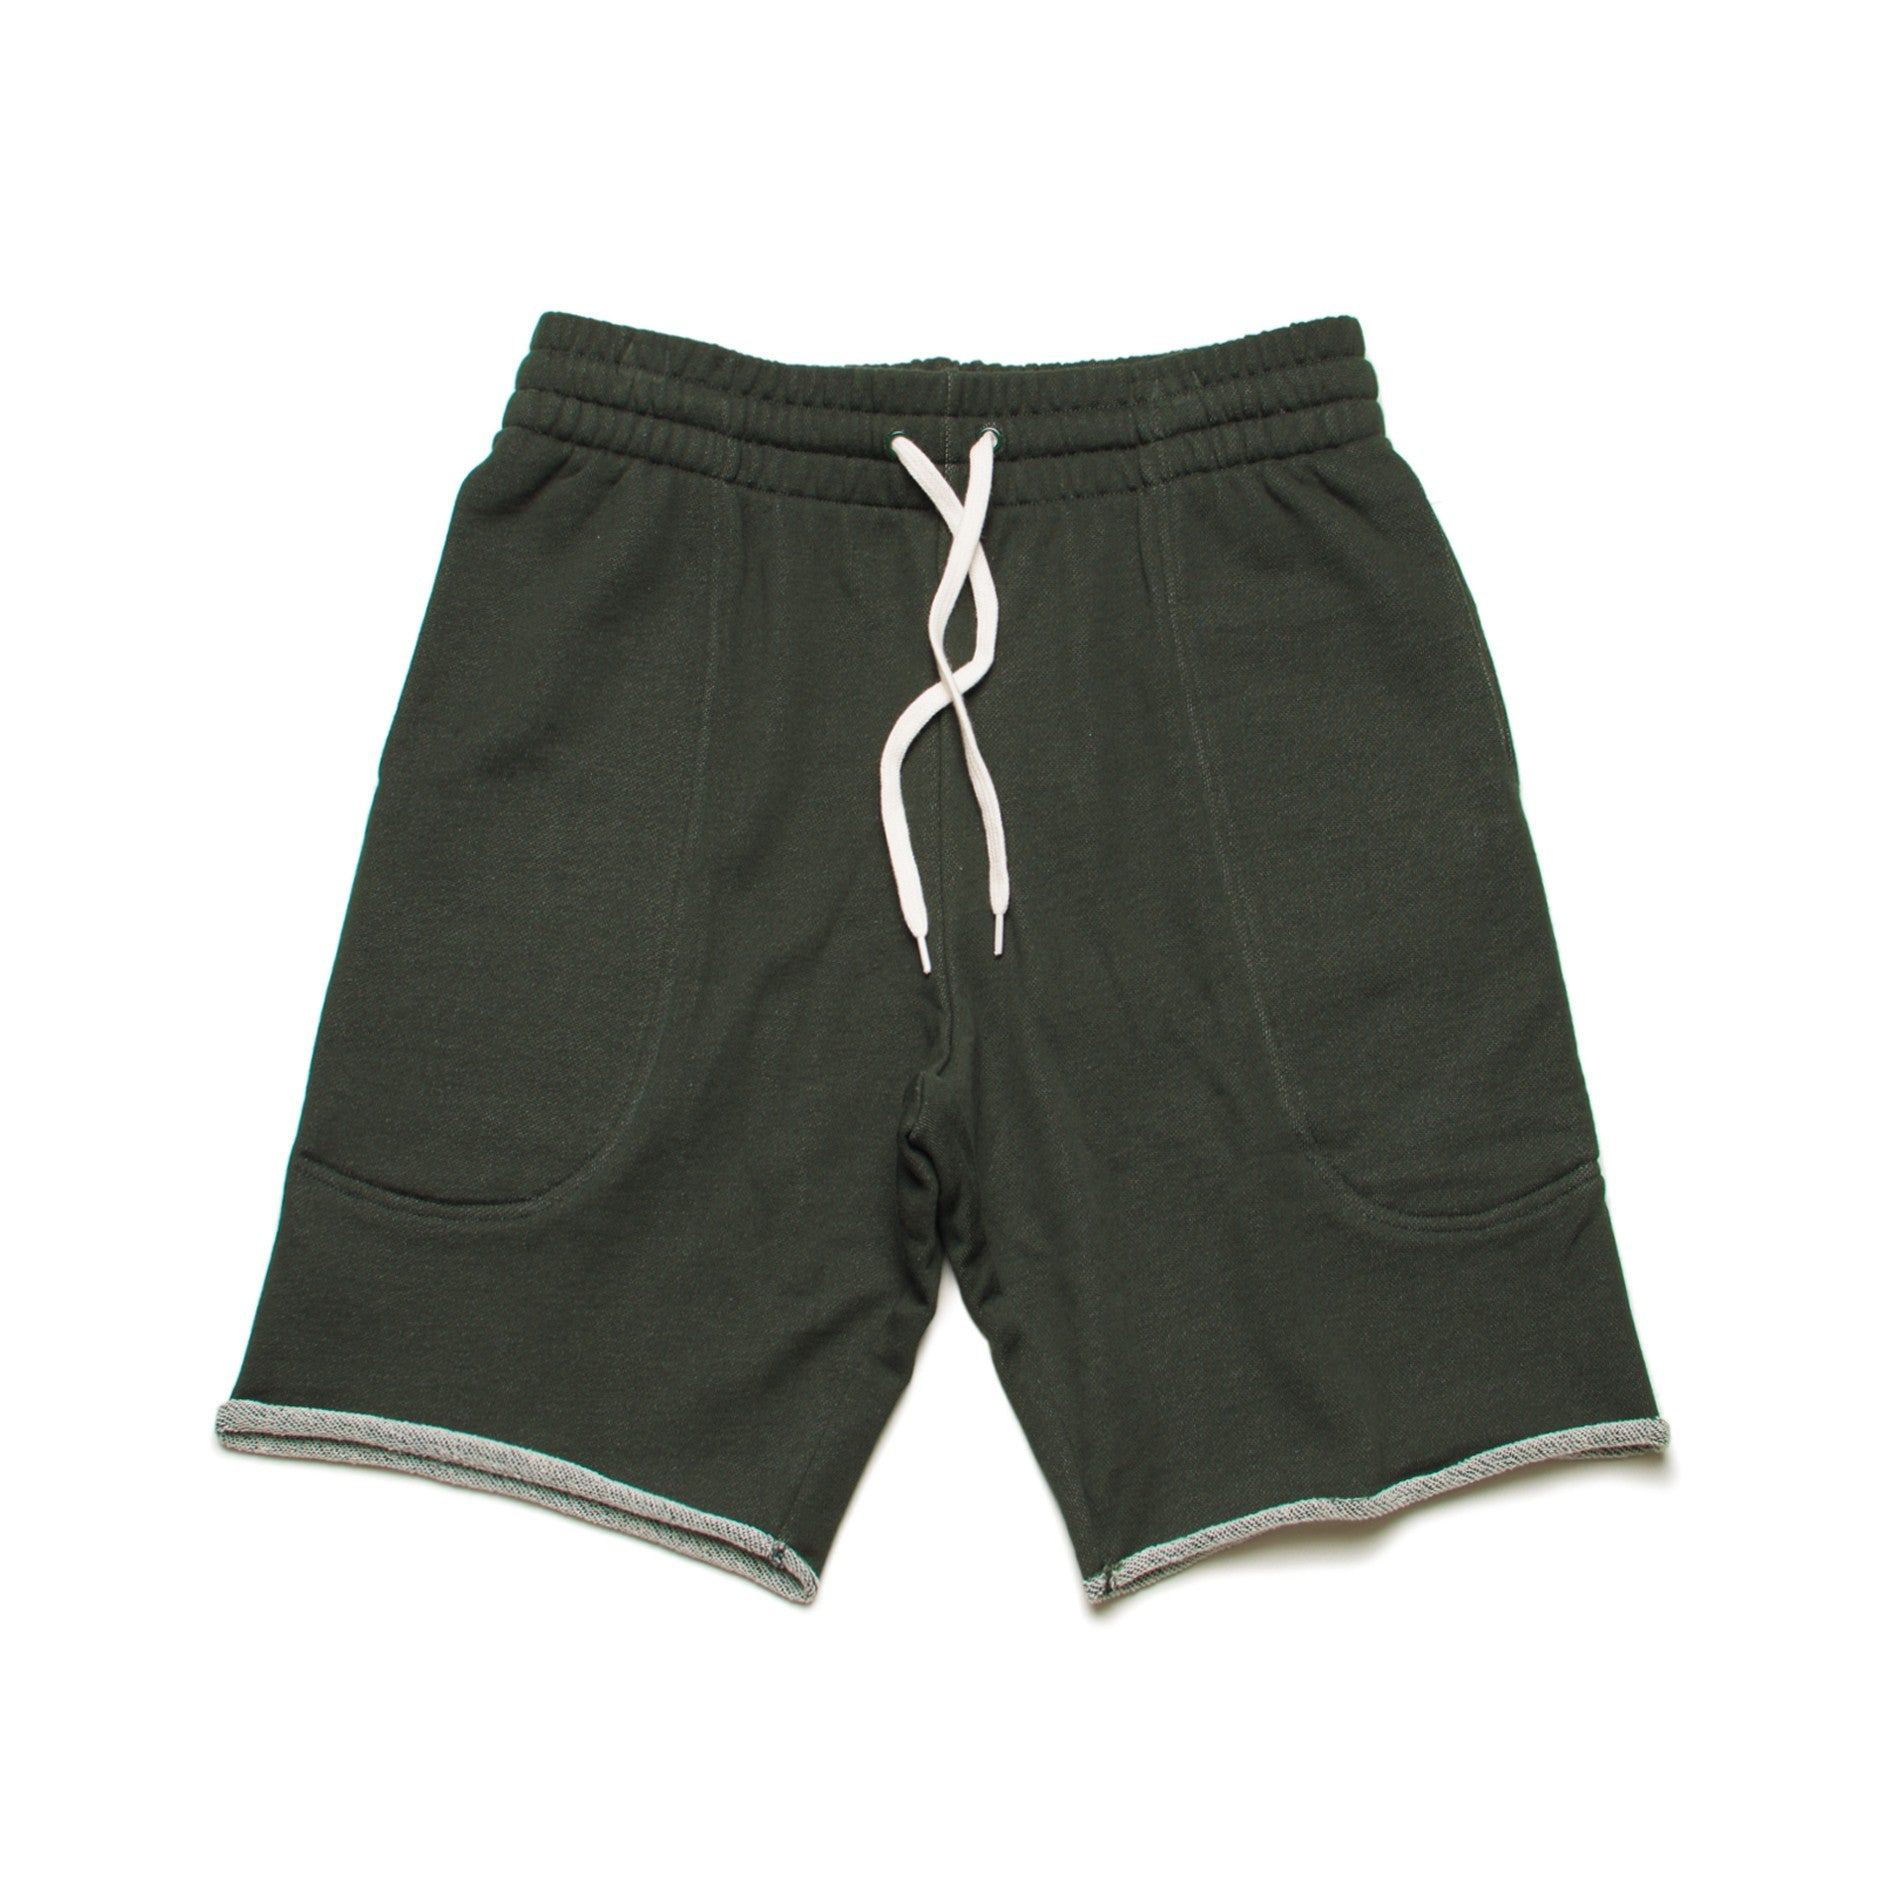 TRACK SHORTS - BUY ONE GET ONE FREE